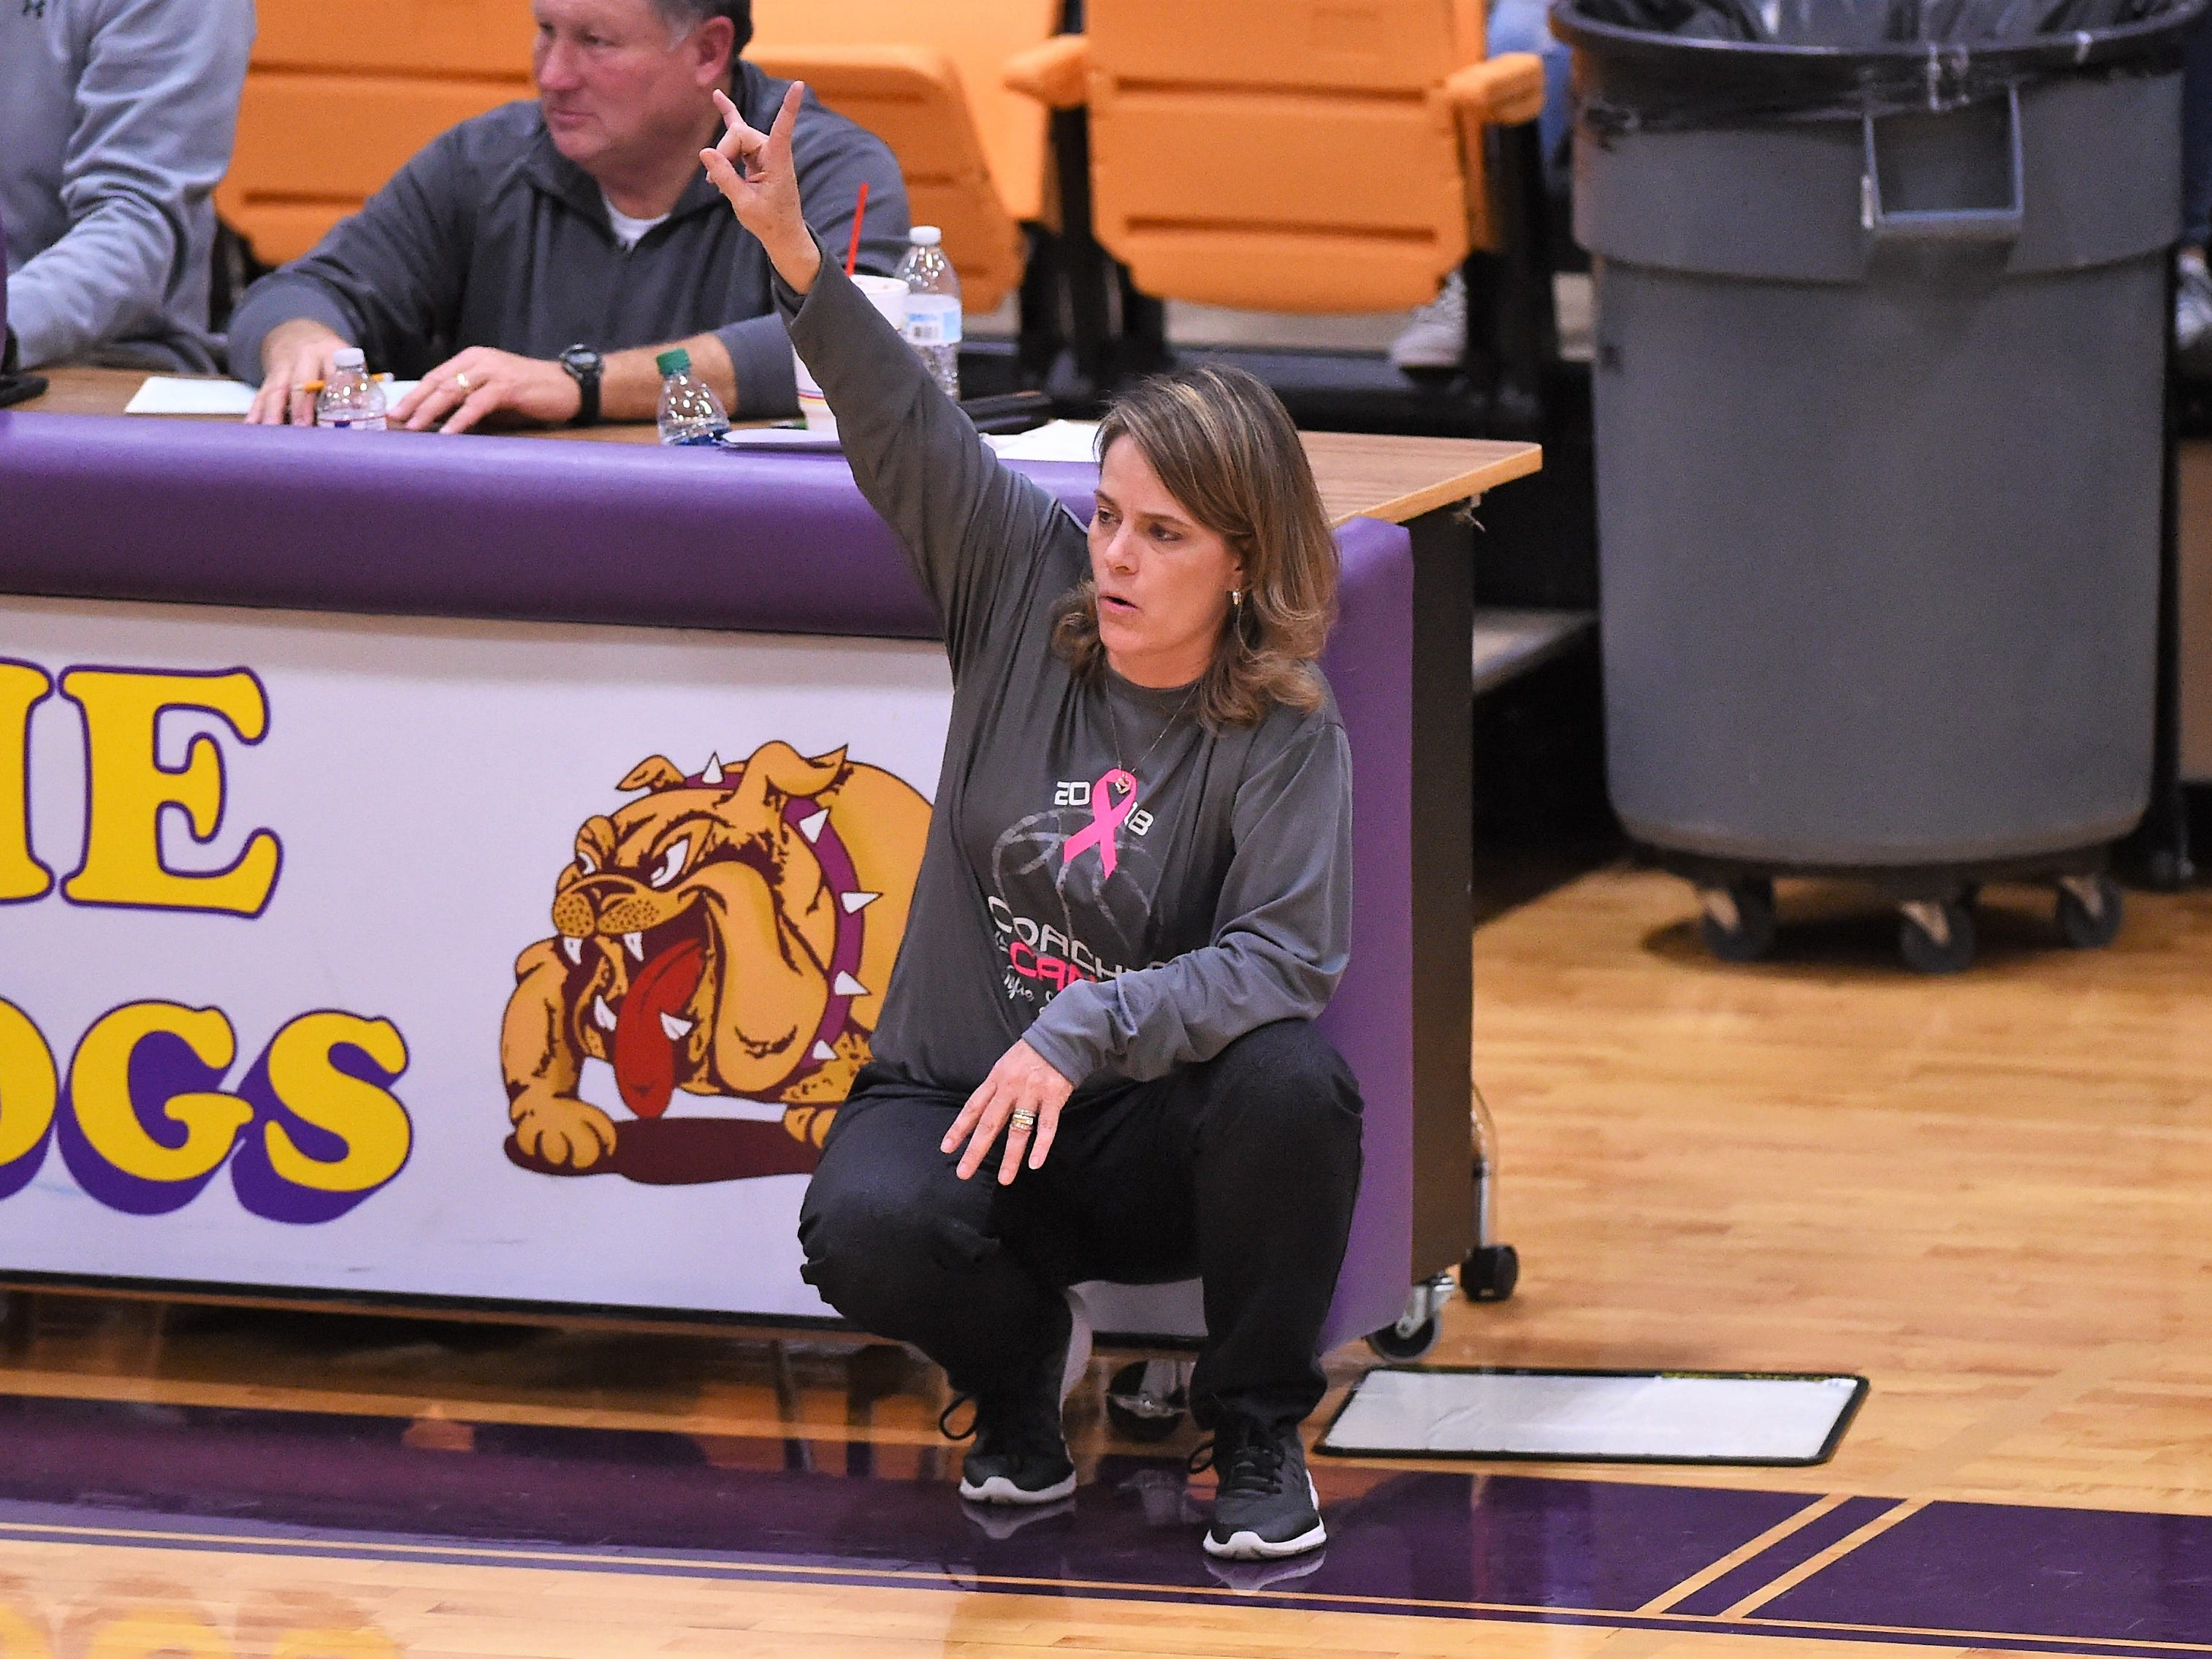 Wylie coach Amy Powell calls out a play during the Coaches vs. Cancer Pink Out game against Merkel on Tuesday, Dec. 4, 2018. The Lady Bulldogs won 75-39.